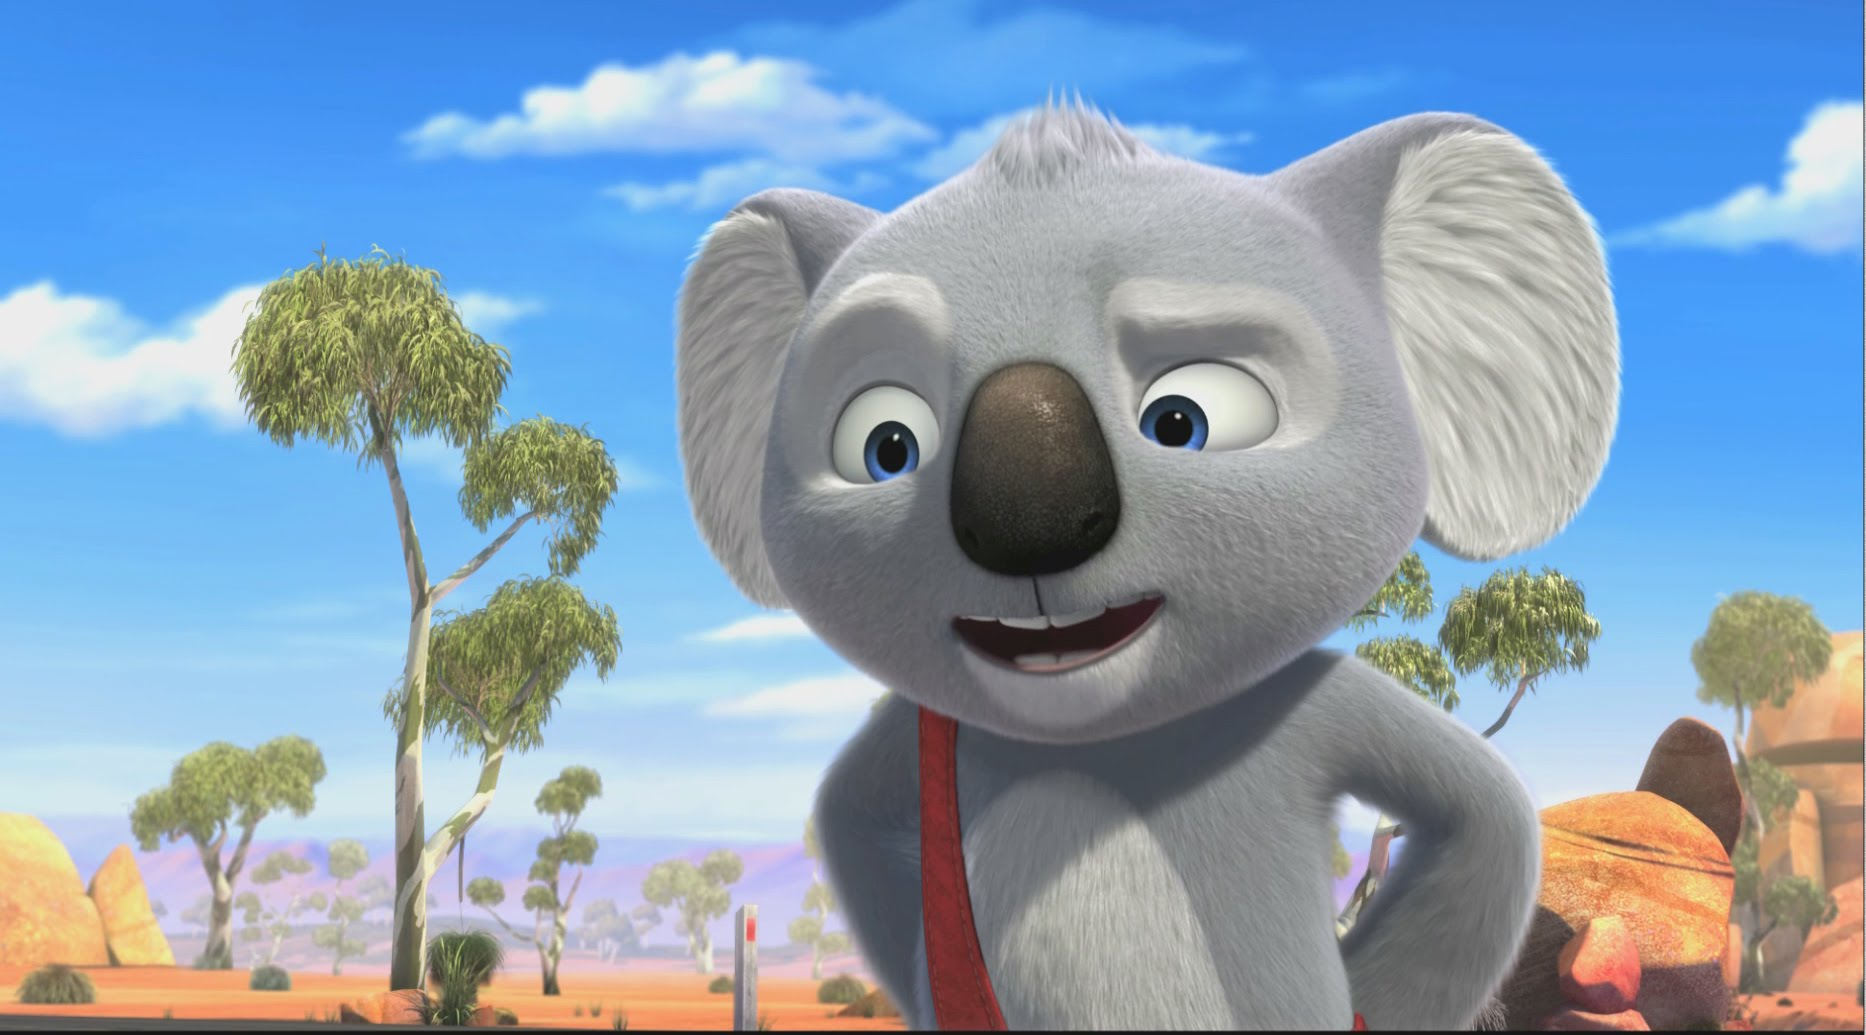 Free Blinky Bill The Movie screening in Southern River this Friday night